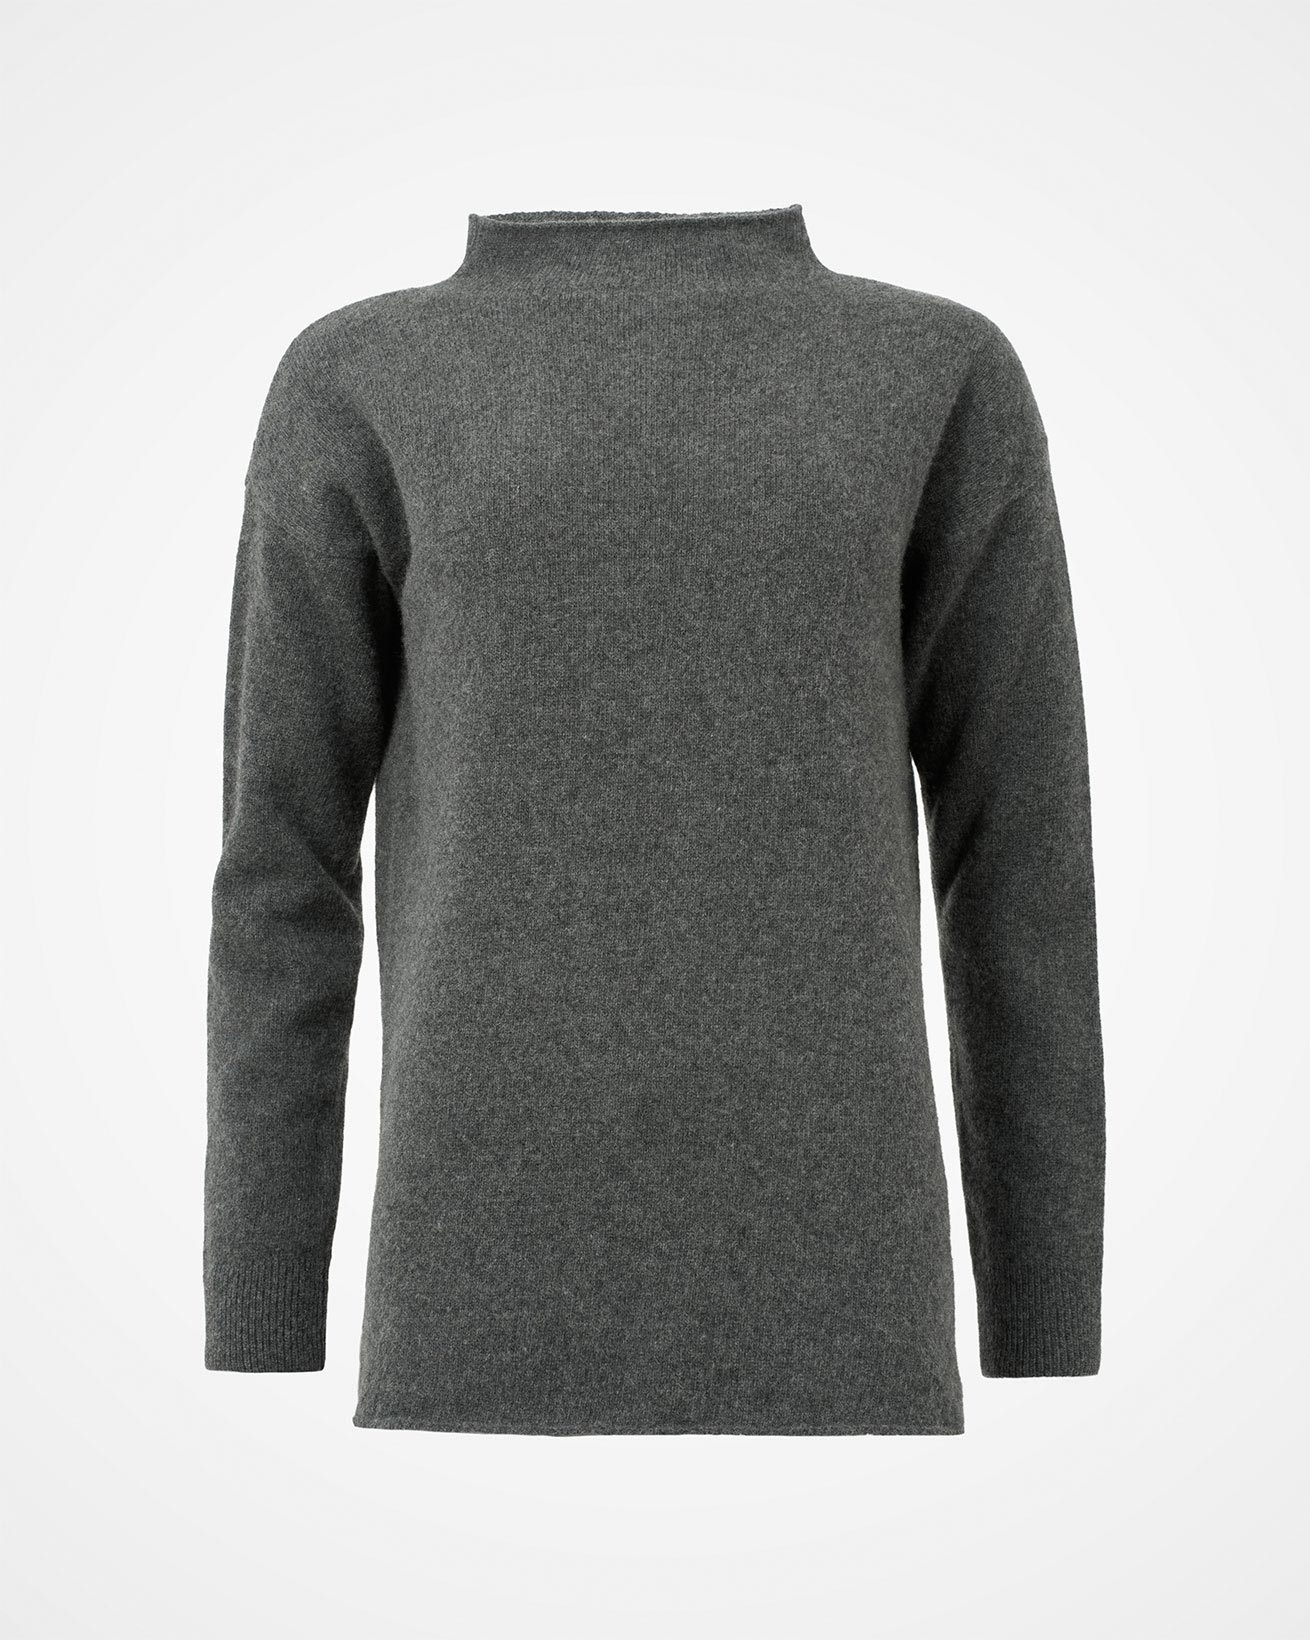 7400_felted-funnel-neck_charcoal_front.jpg